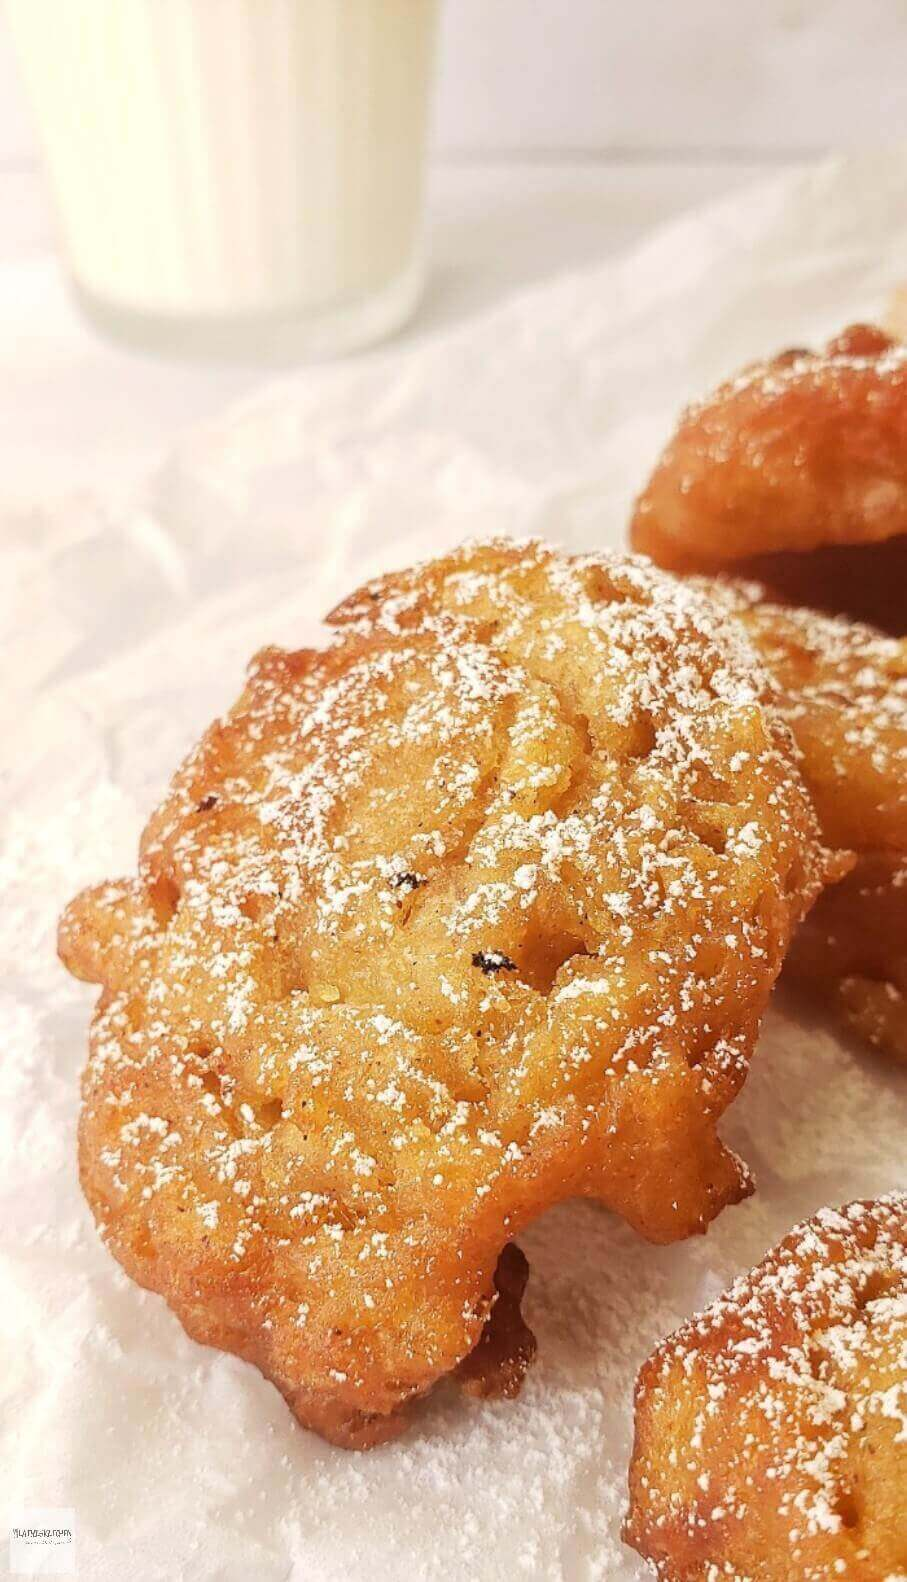 Powdered sugar dusted apple fritters.